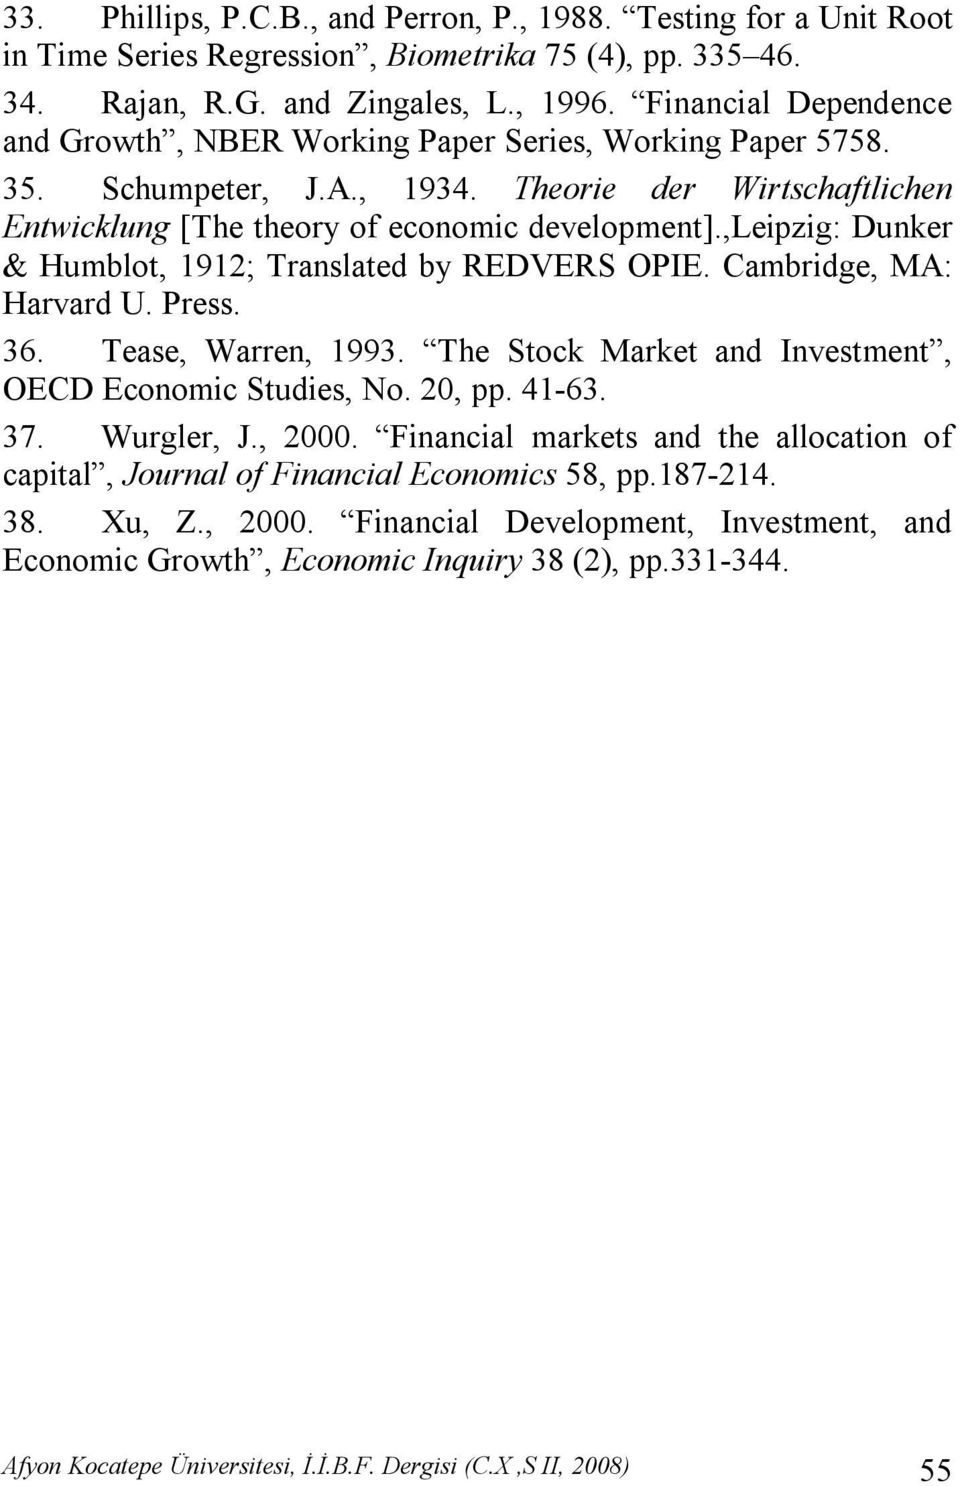 ,leipzig: Dunker & Humblot, 1912; Translated by REDVERS OPIE. Cambridge, MA: Harvard U. Press. 36. Tease, Warren, 1993. The Stock Market and Investment, OECD Economic Studies, No. 20, pp. 41-63. 37.